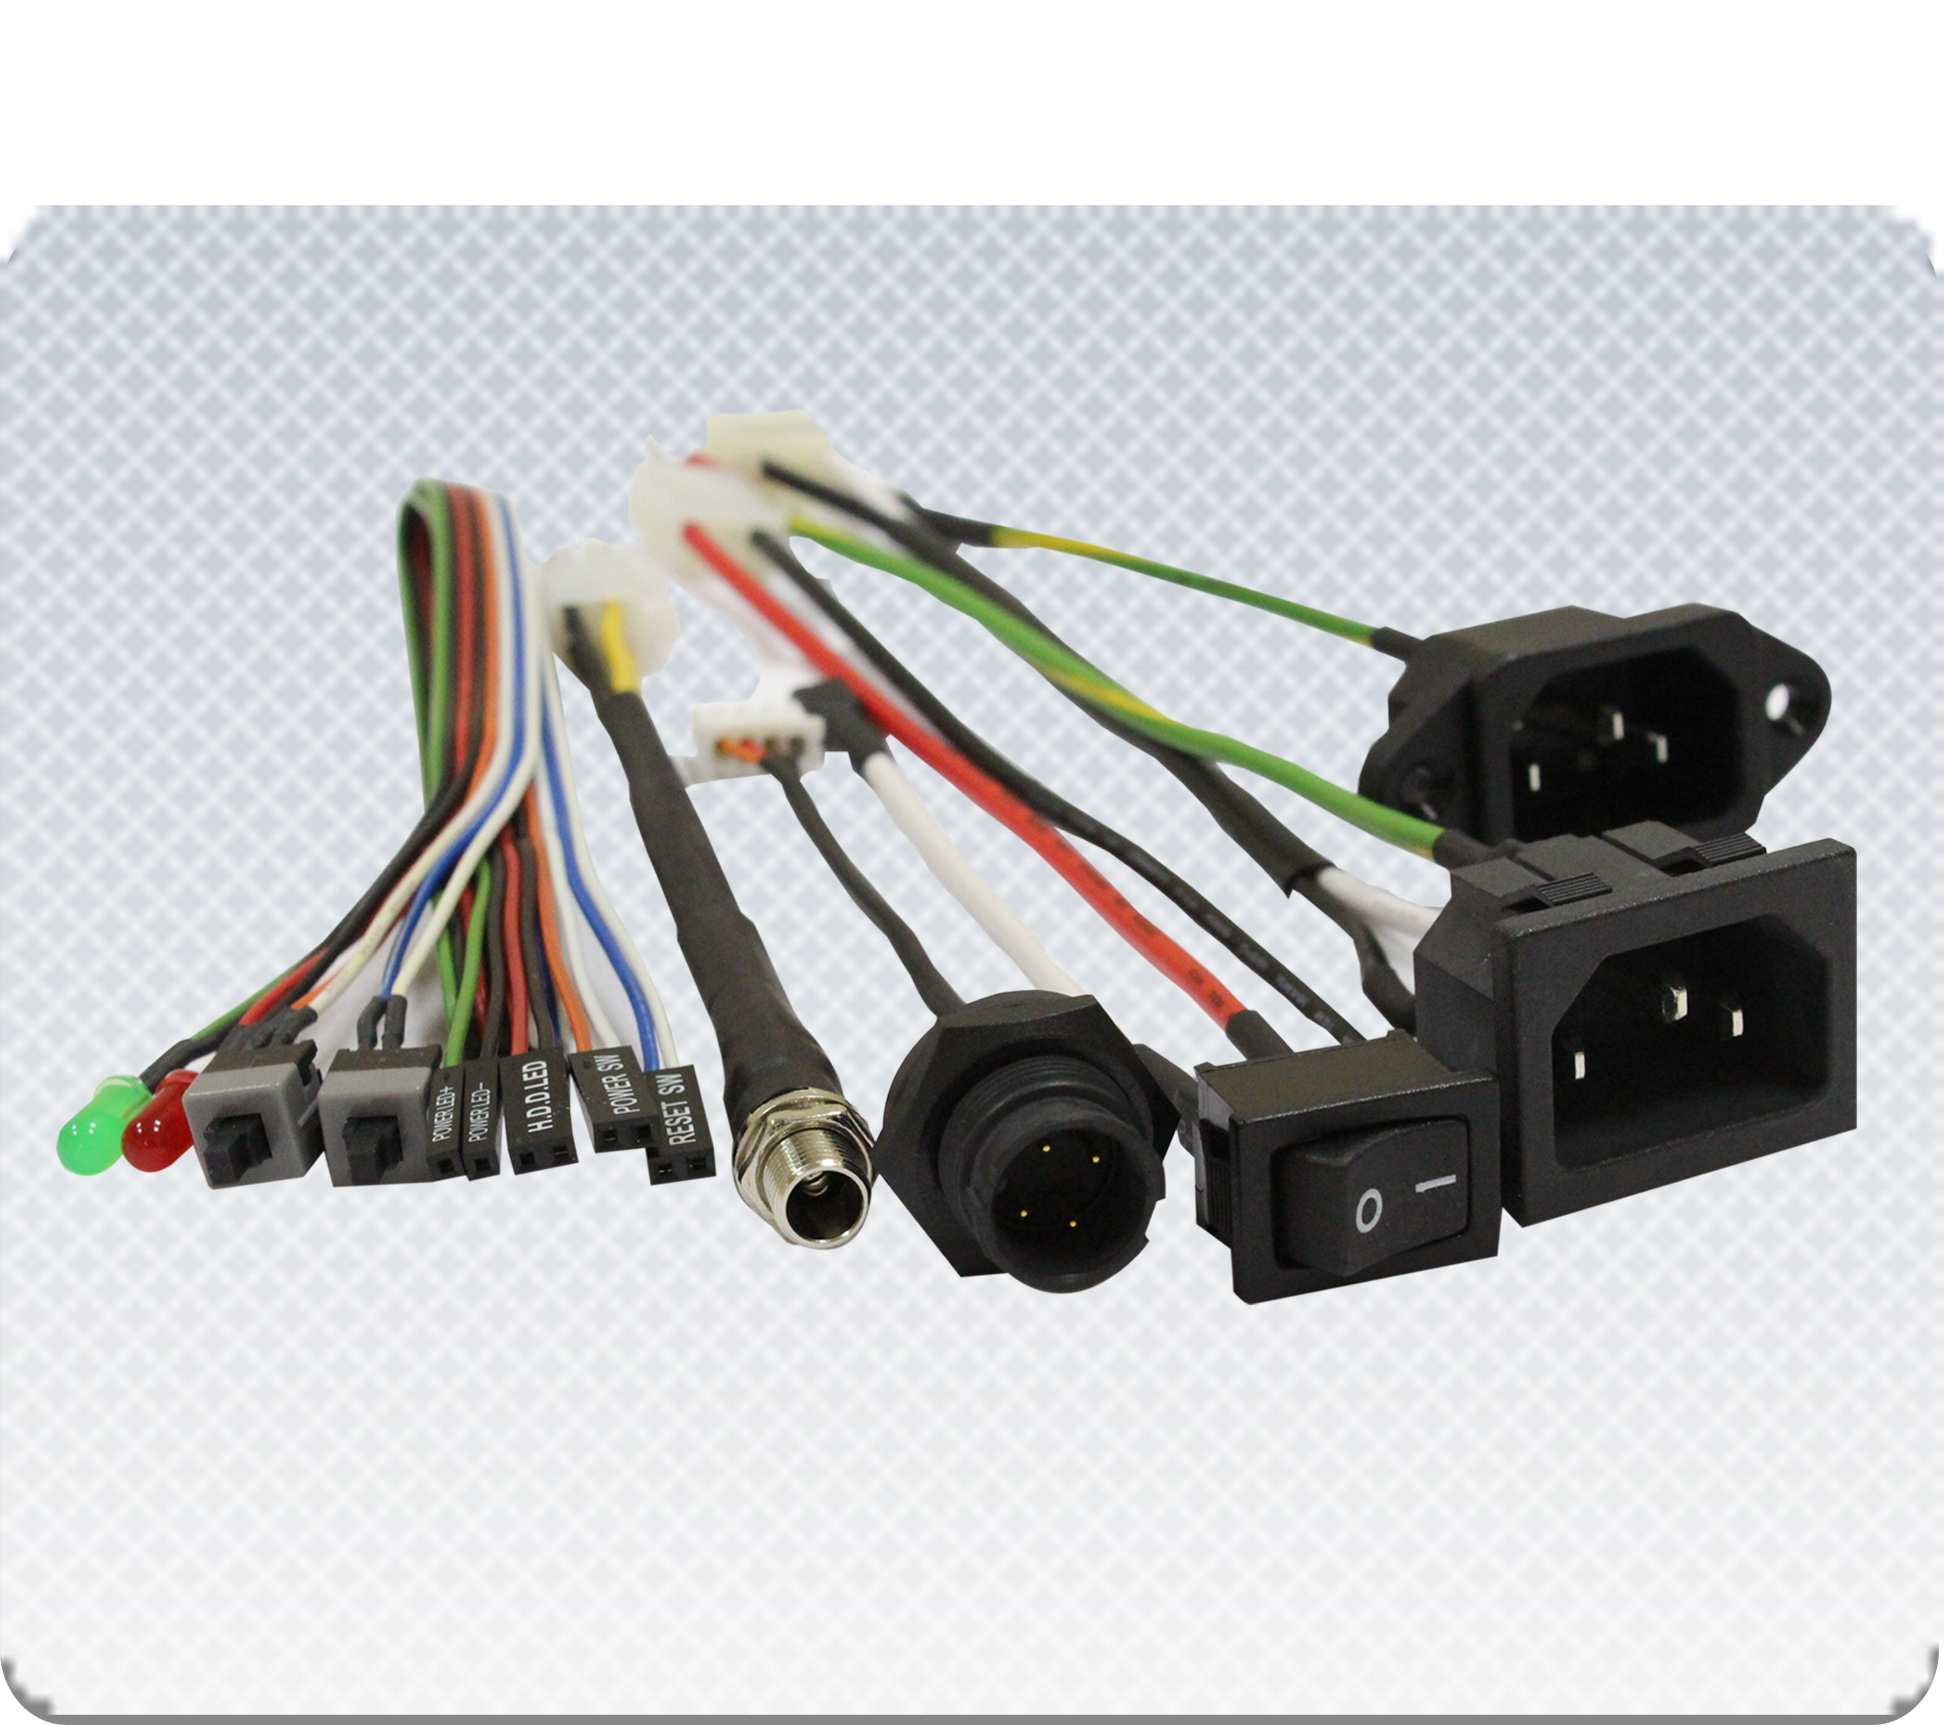 ip camera cable ip camera cable manufacturer supplier rh grandprotech com Engine Wiring Harness Trailer Wiring Harness